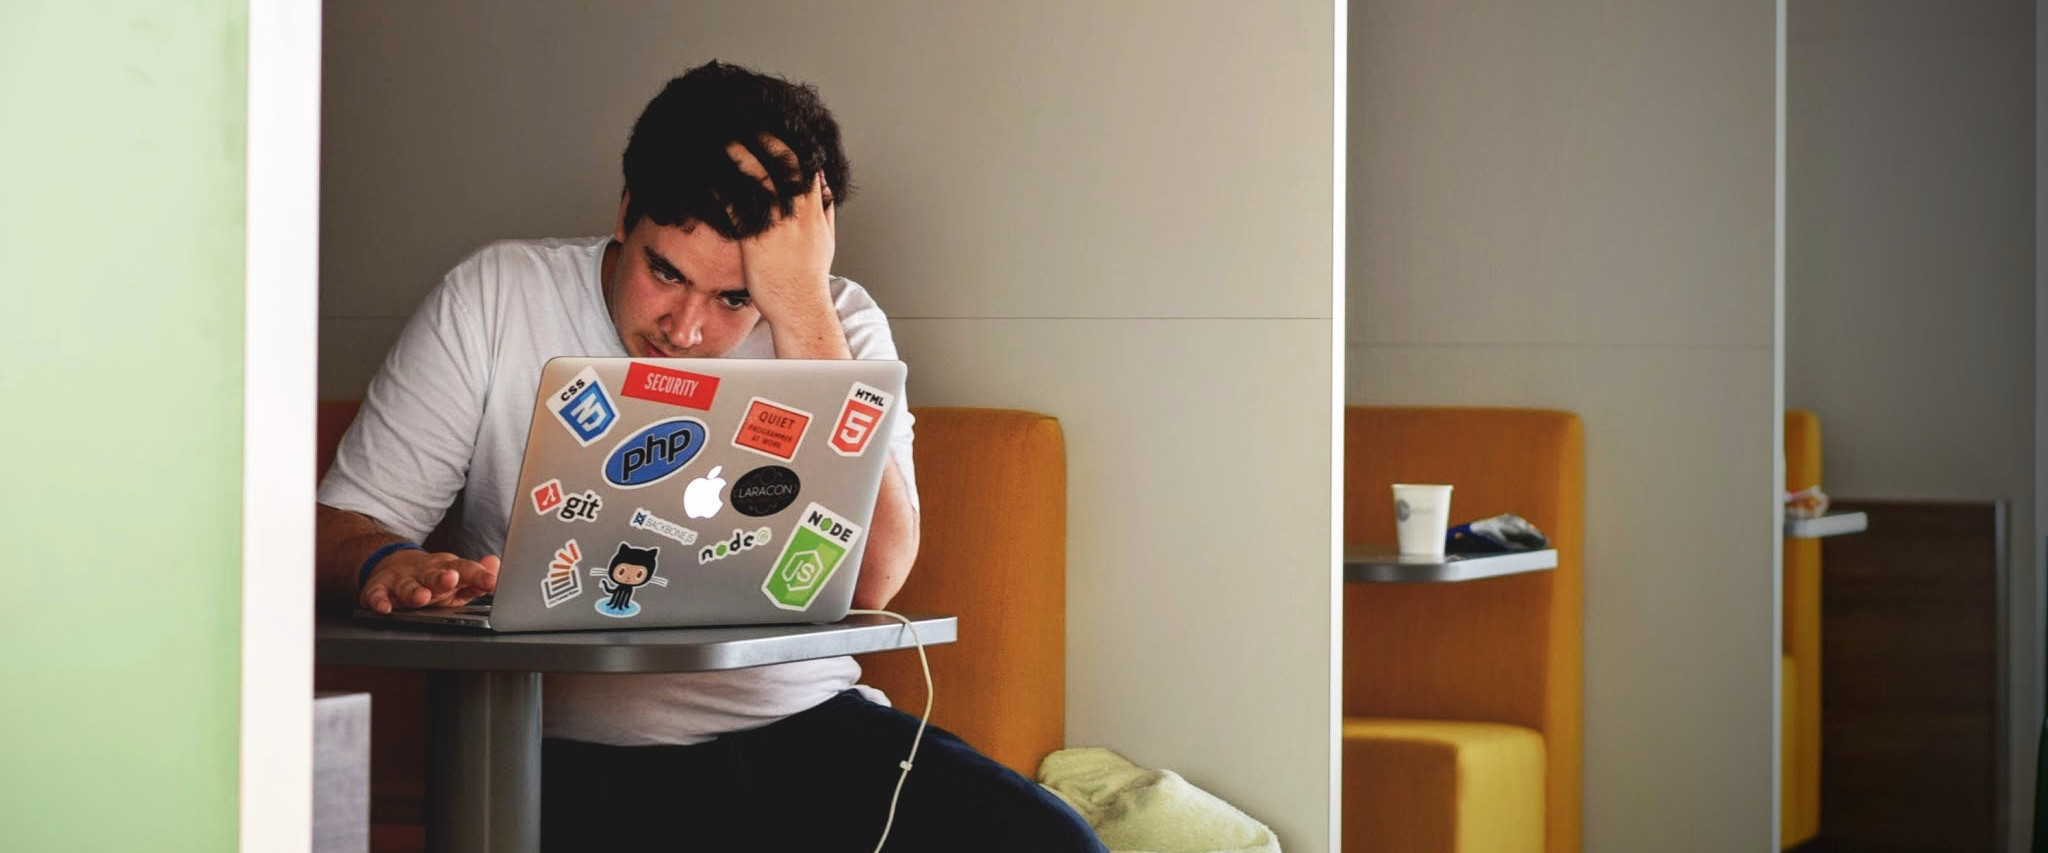 VPS troubleshooting: A man frustrated over his laptop